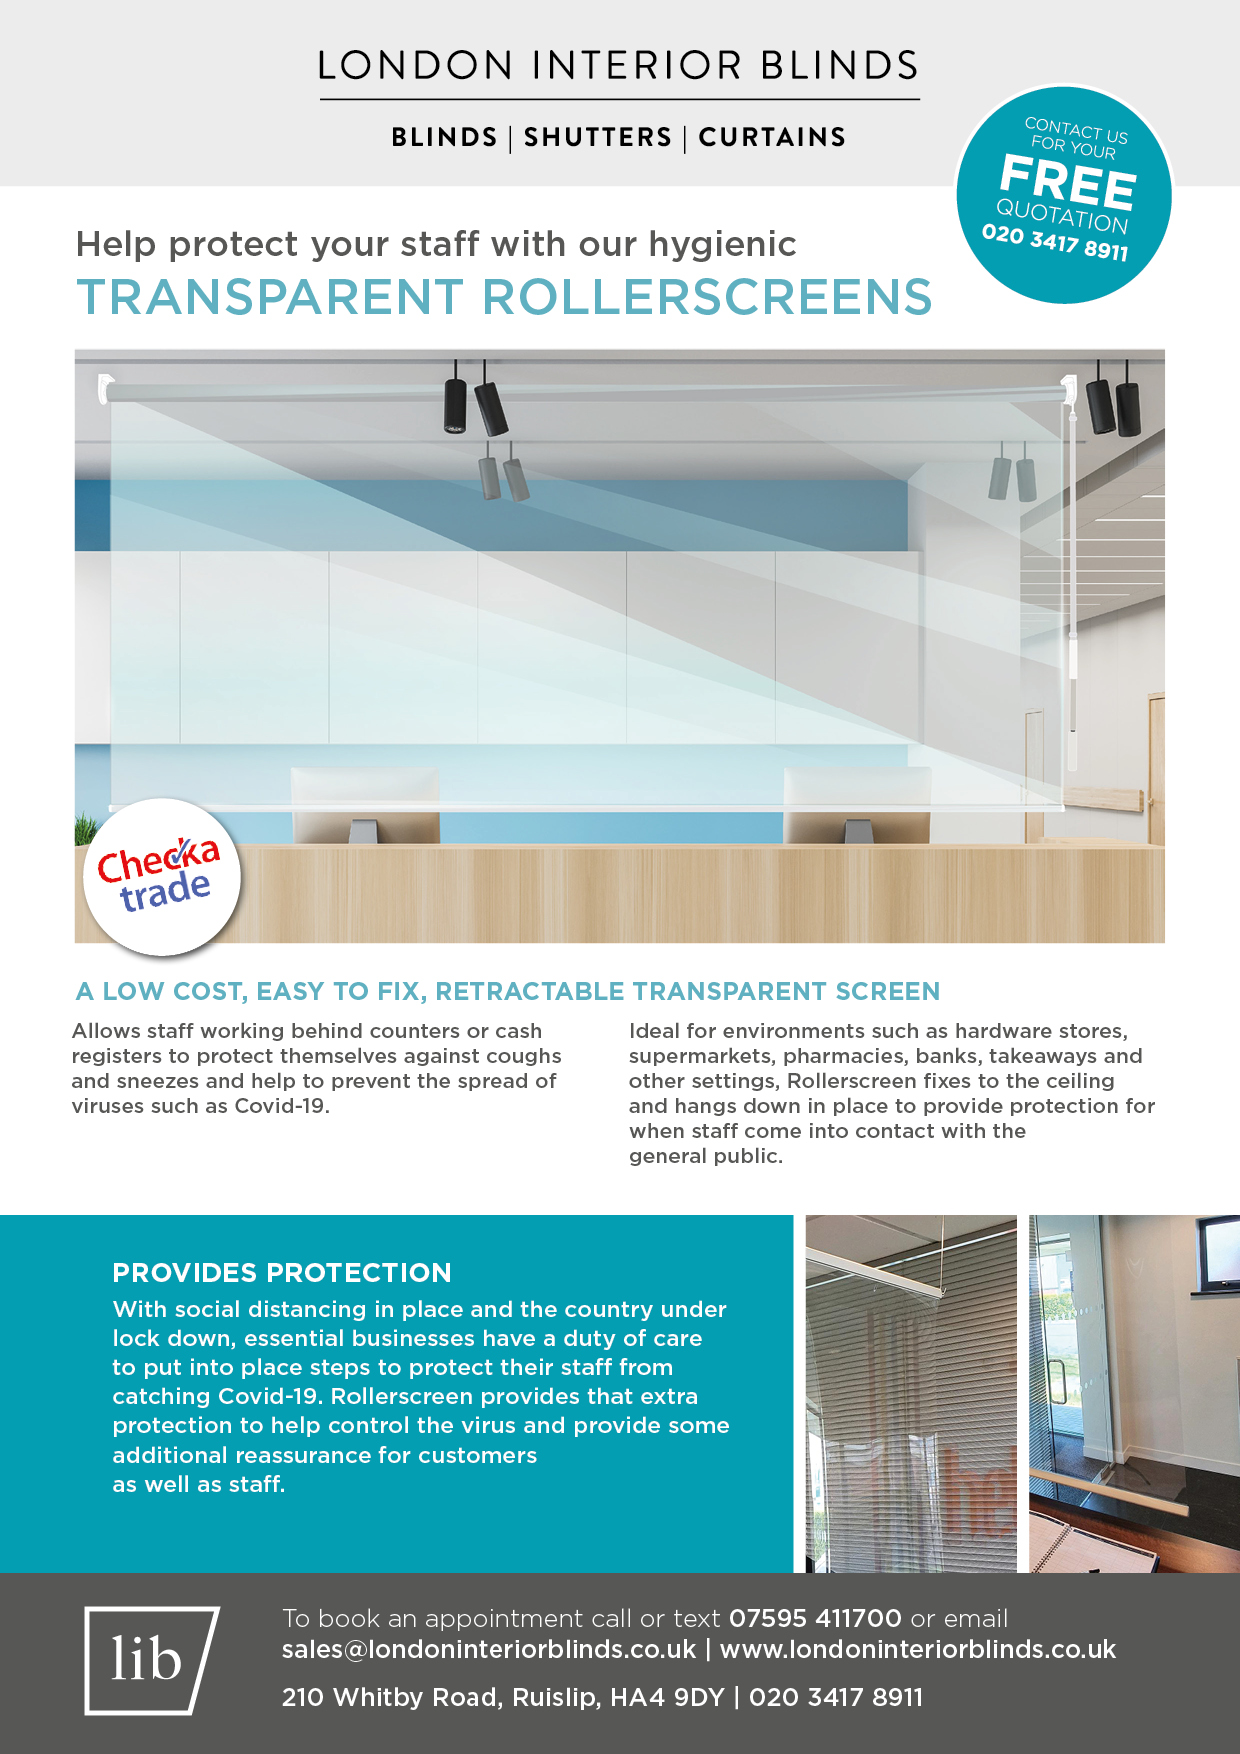 LIB Protection rollerscreen